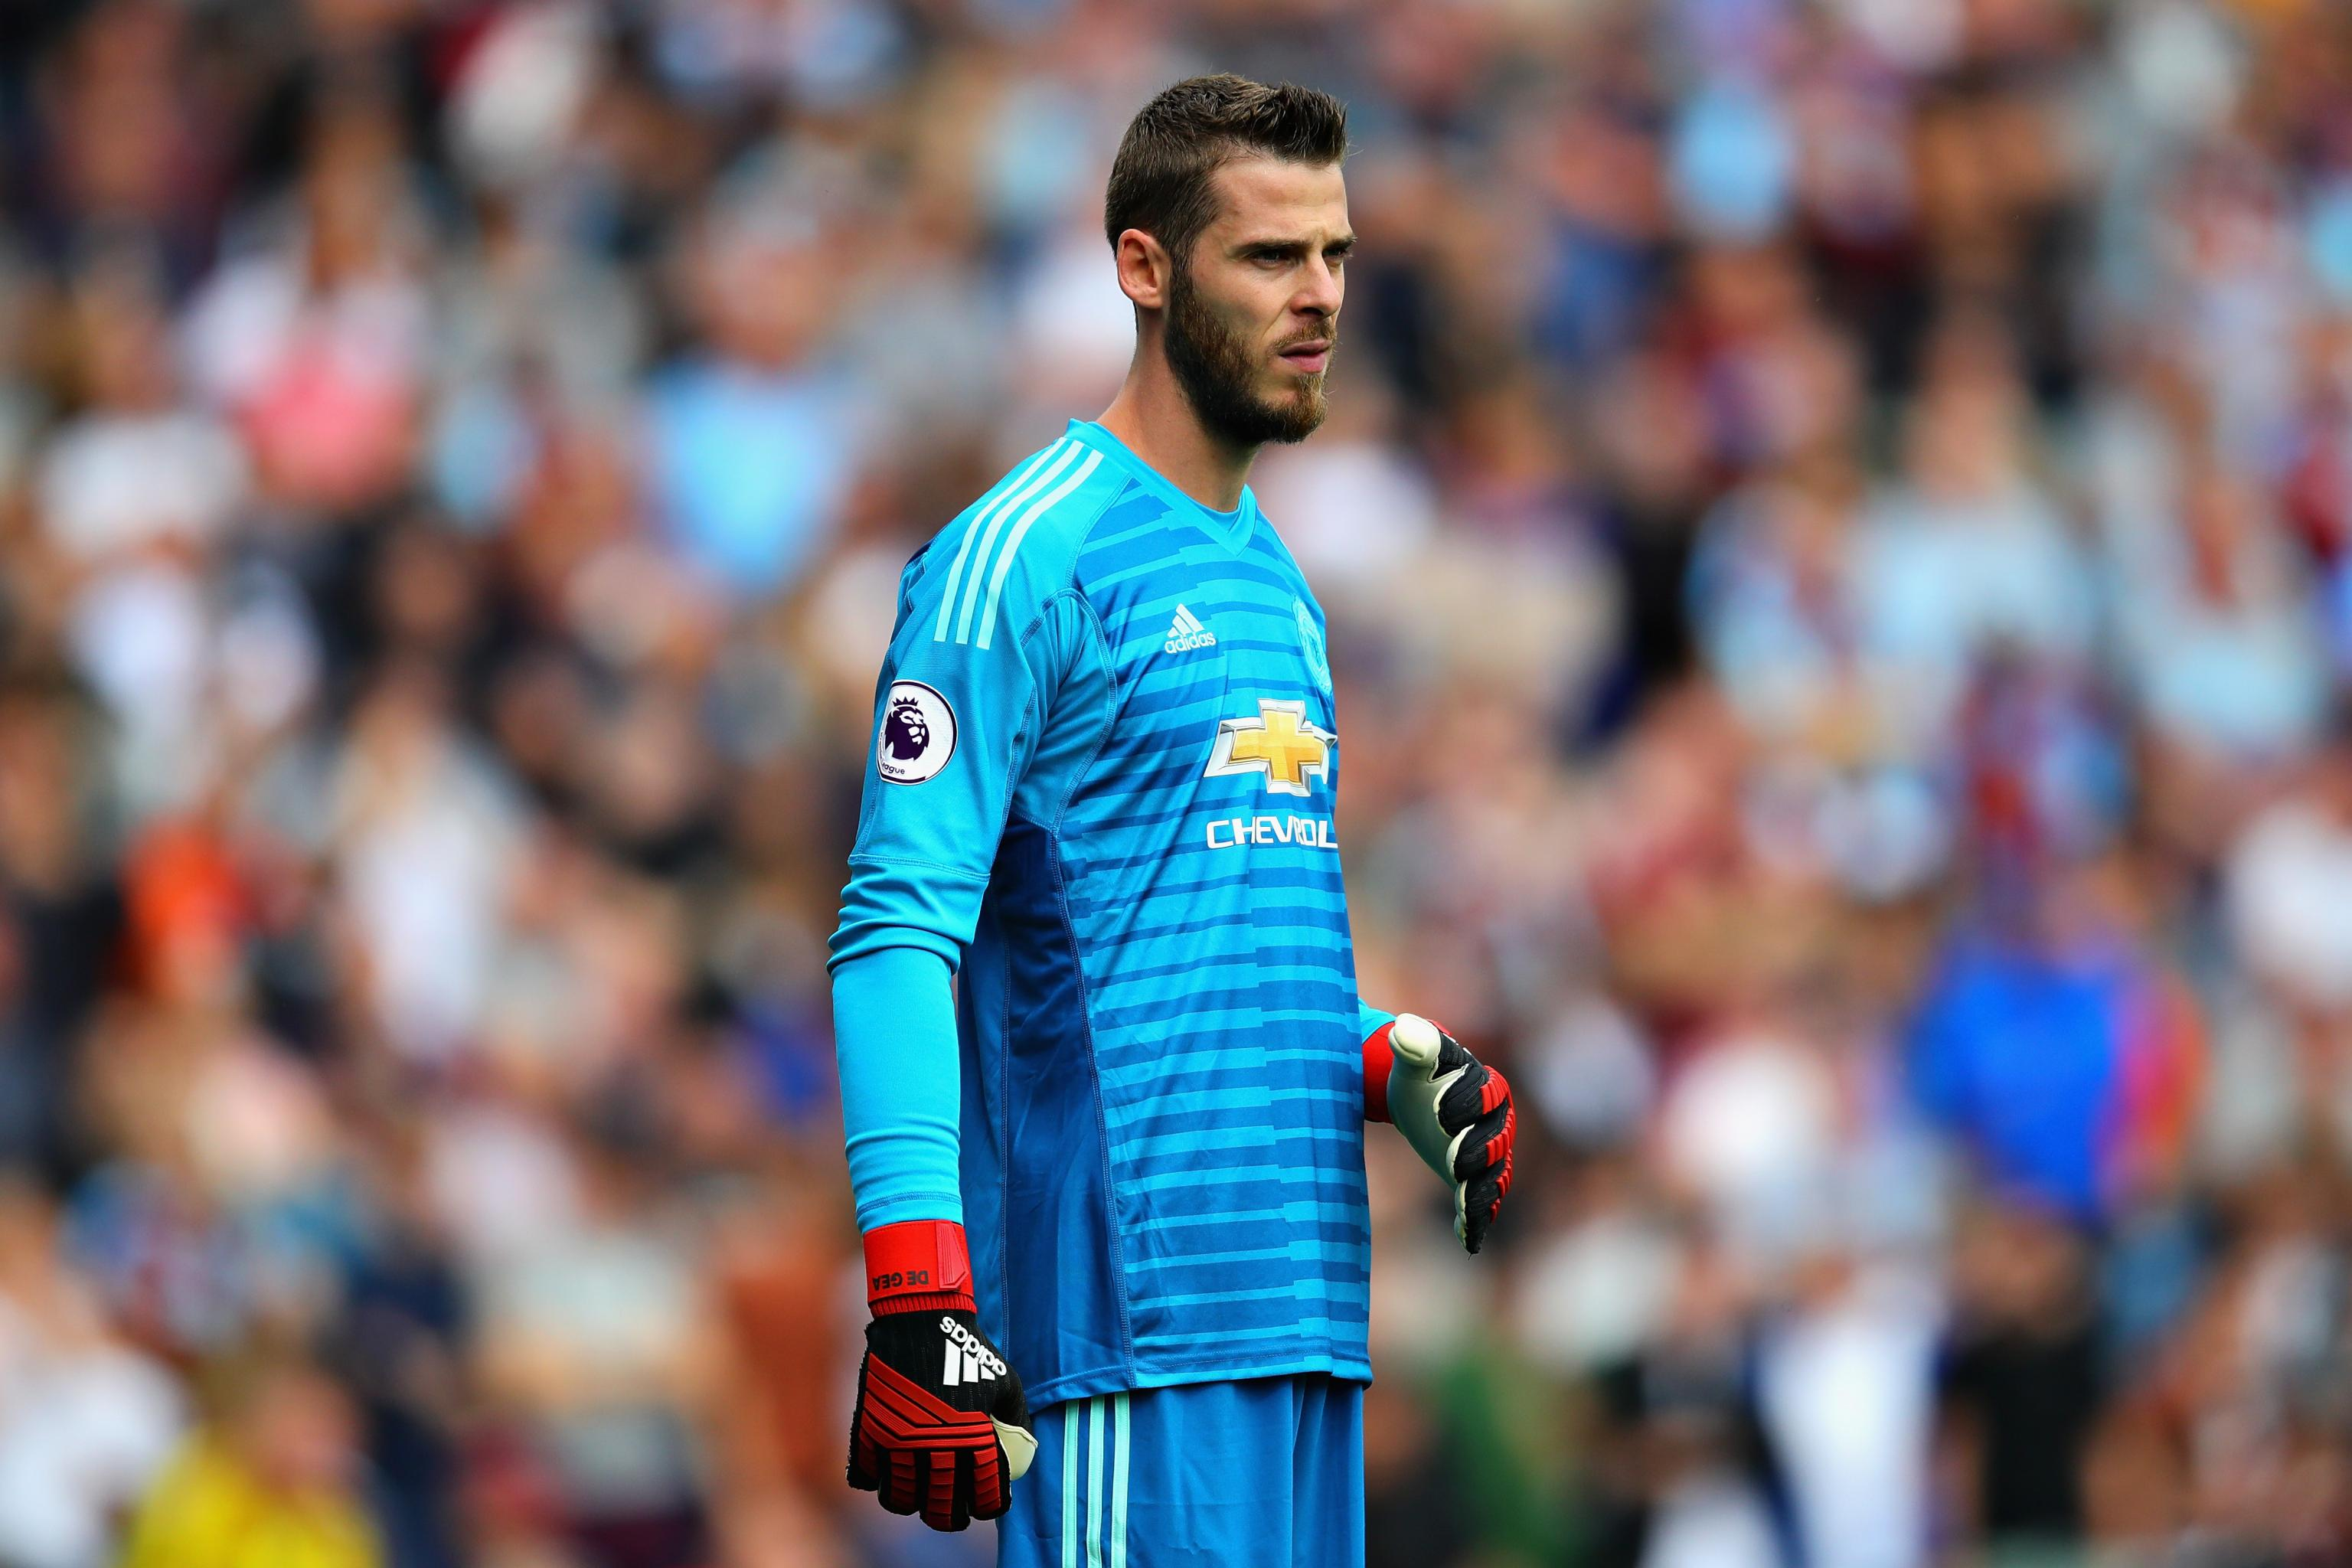 finest selection 96ffb 14704 Manchester United's David De Gea 'Is the Messi of ...